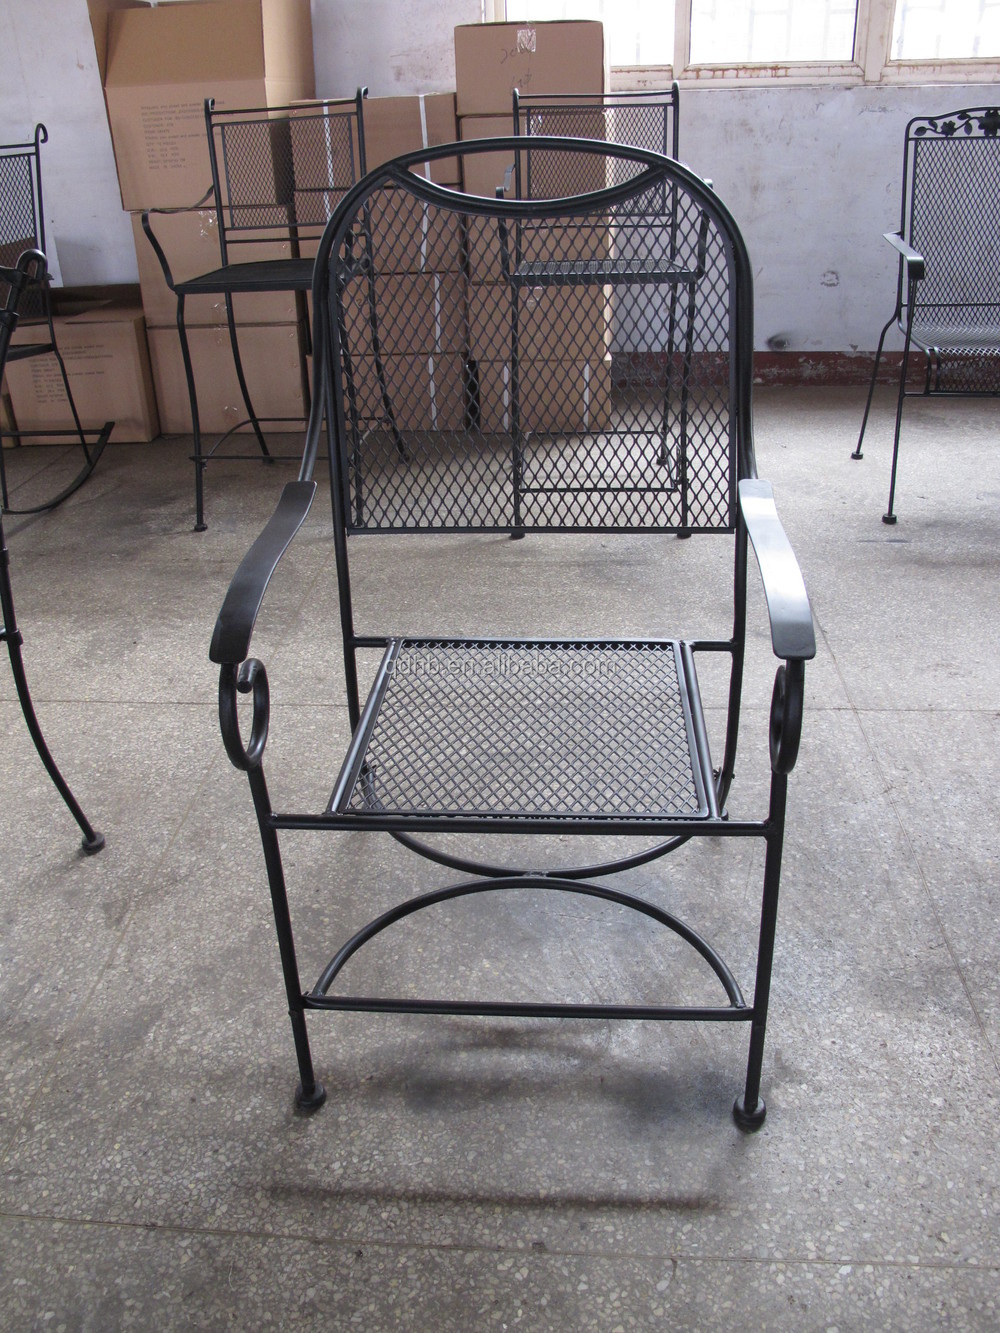 Antique Wrought Iron Black Garden Furniture Buy Garden Furniture Iron Garde